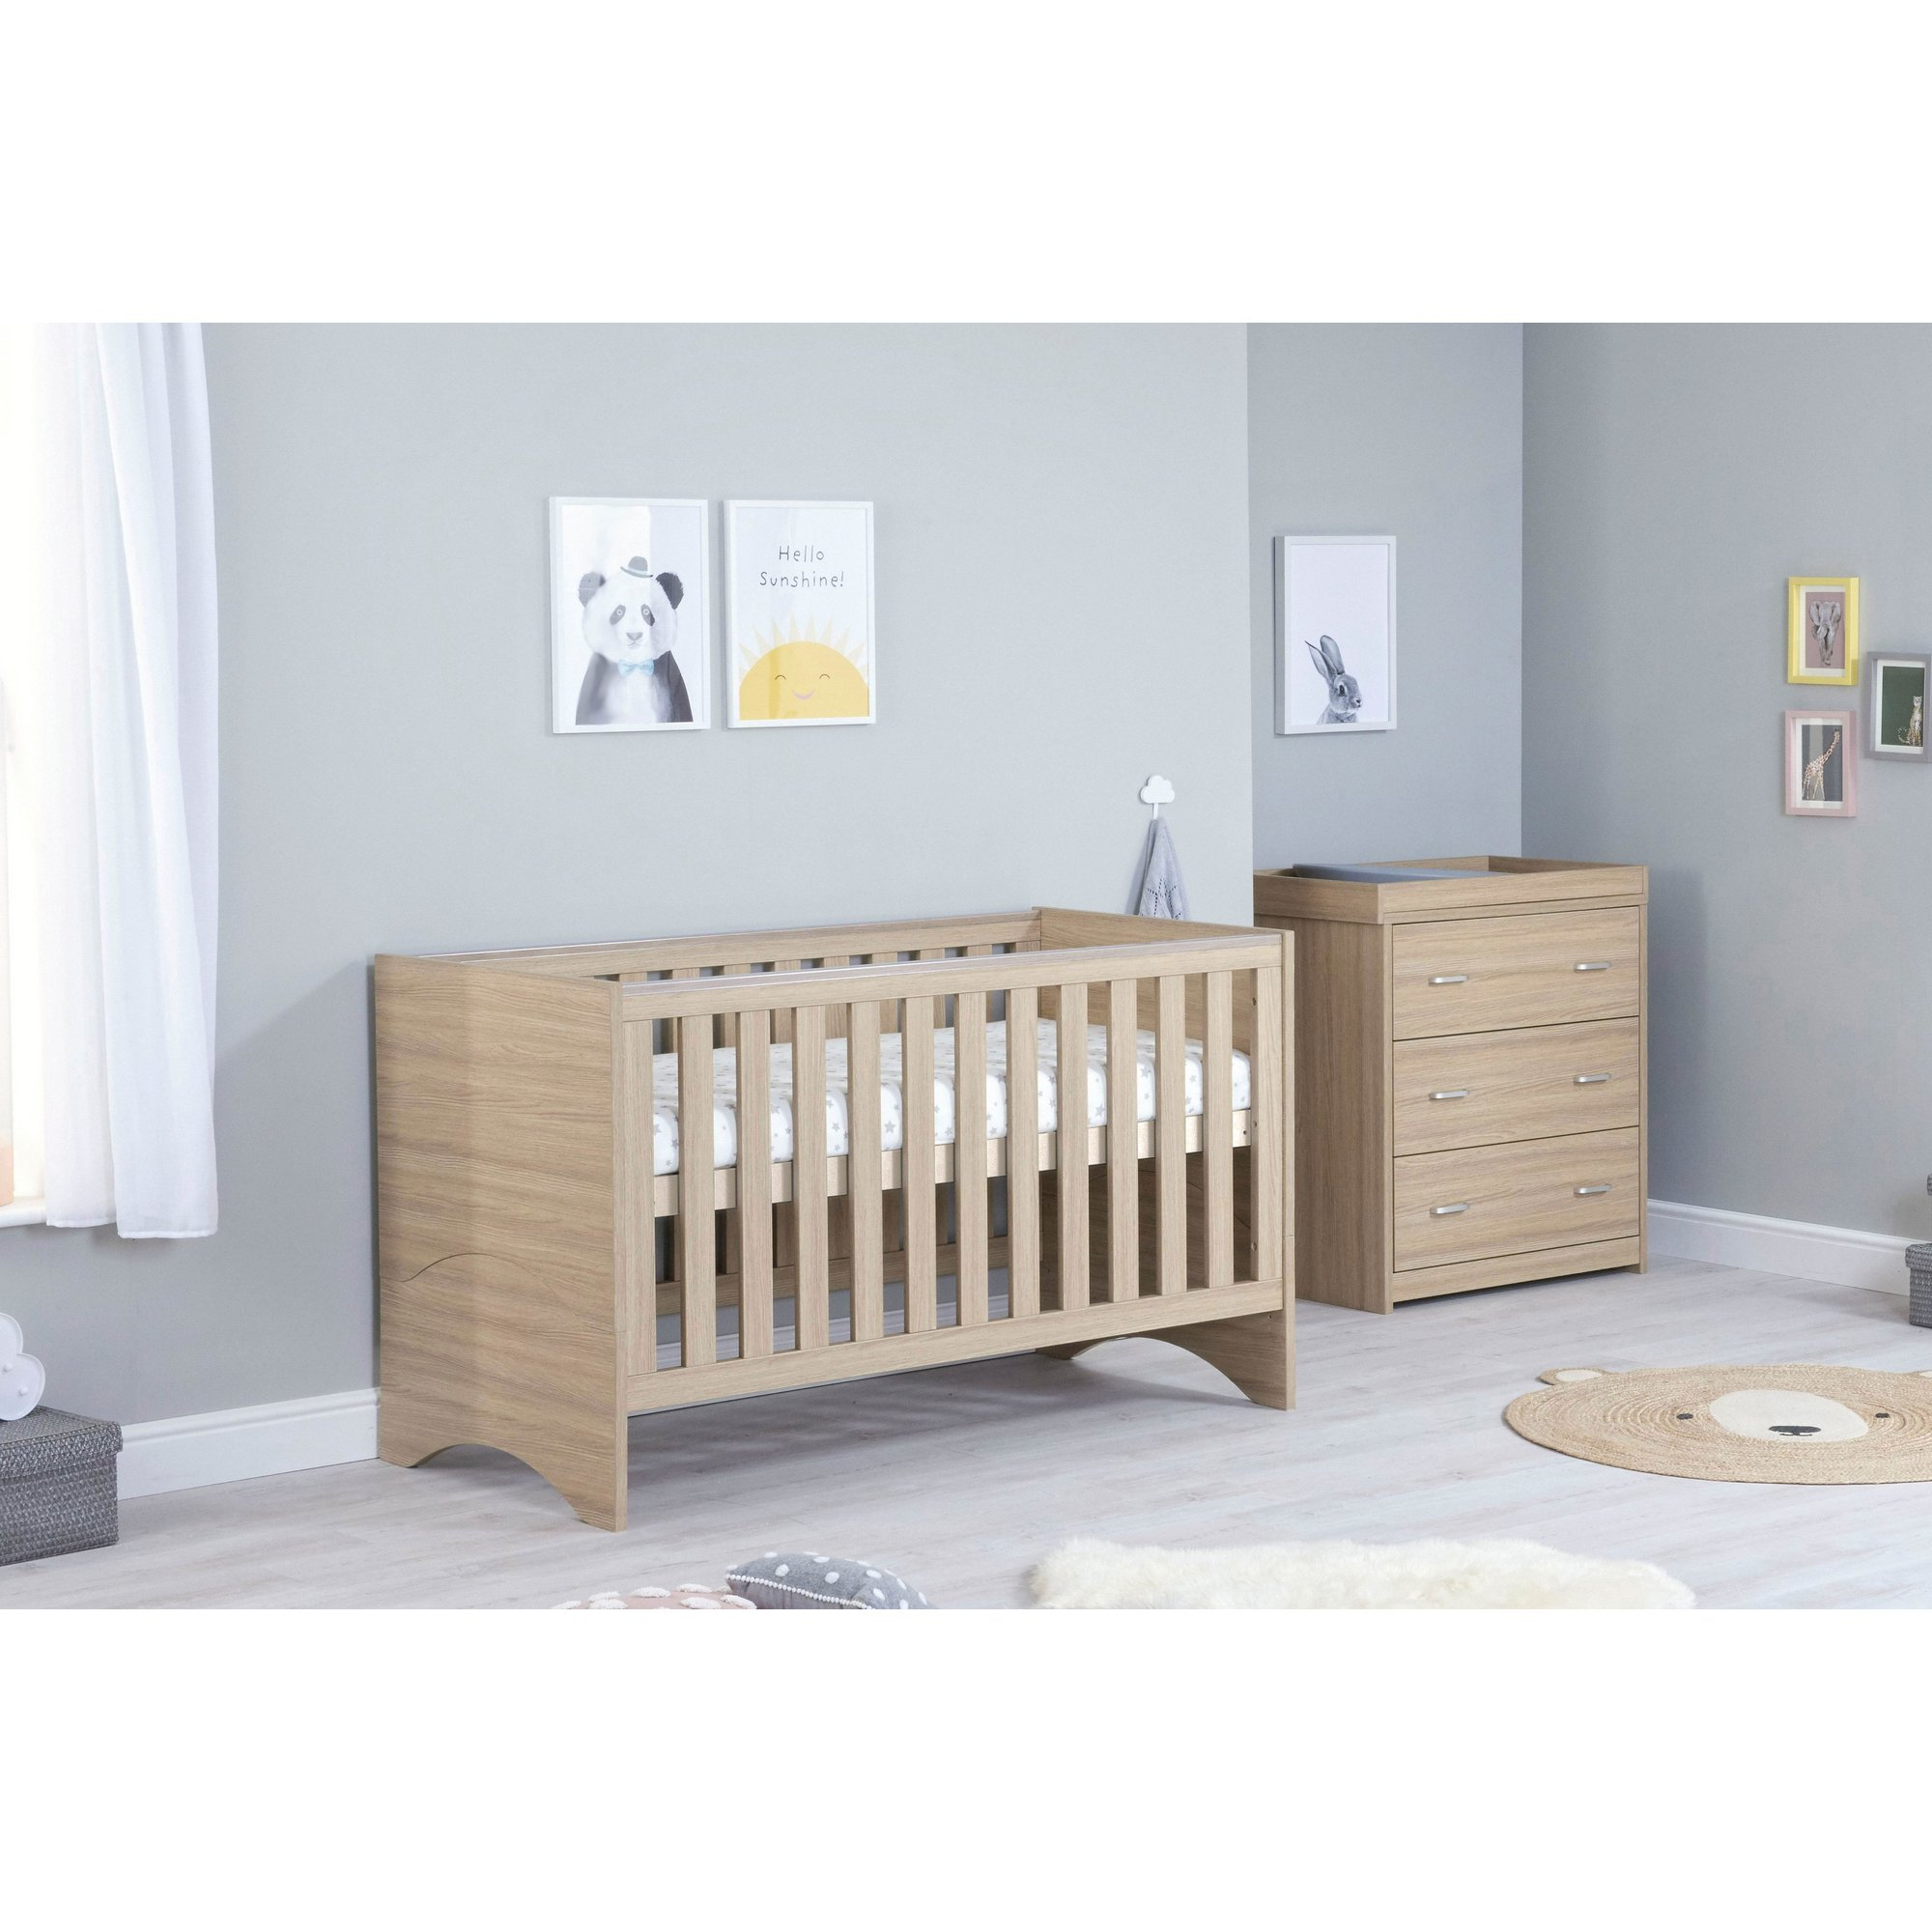 Image of 2 Piece Veni Oak Cot Bed and Chest Room Set